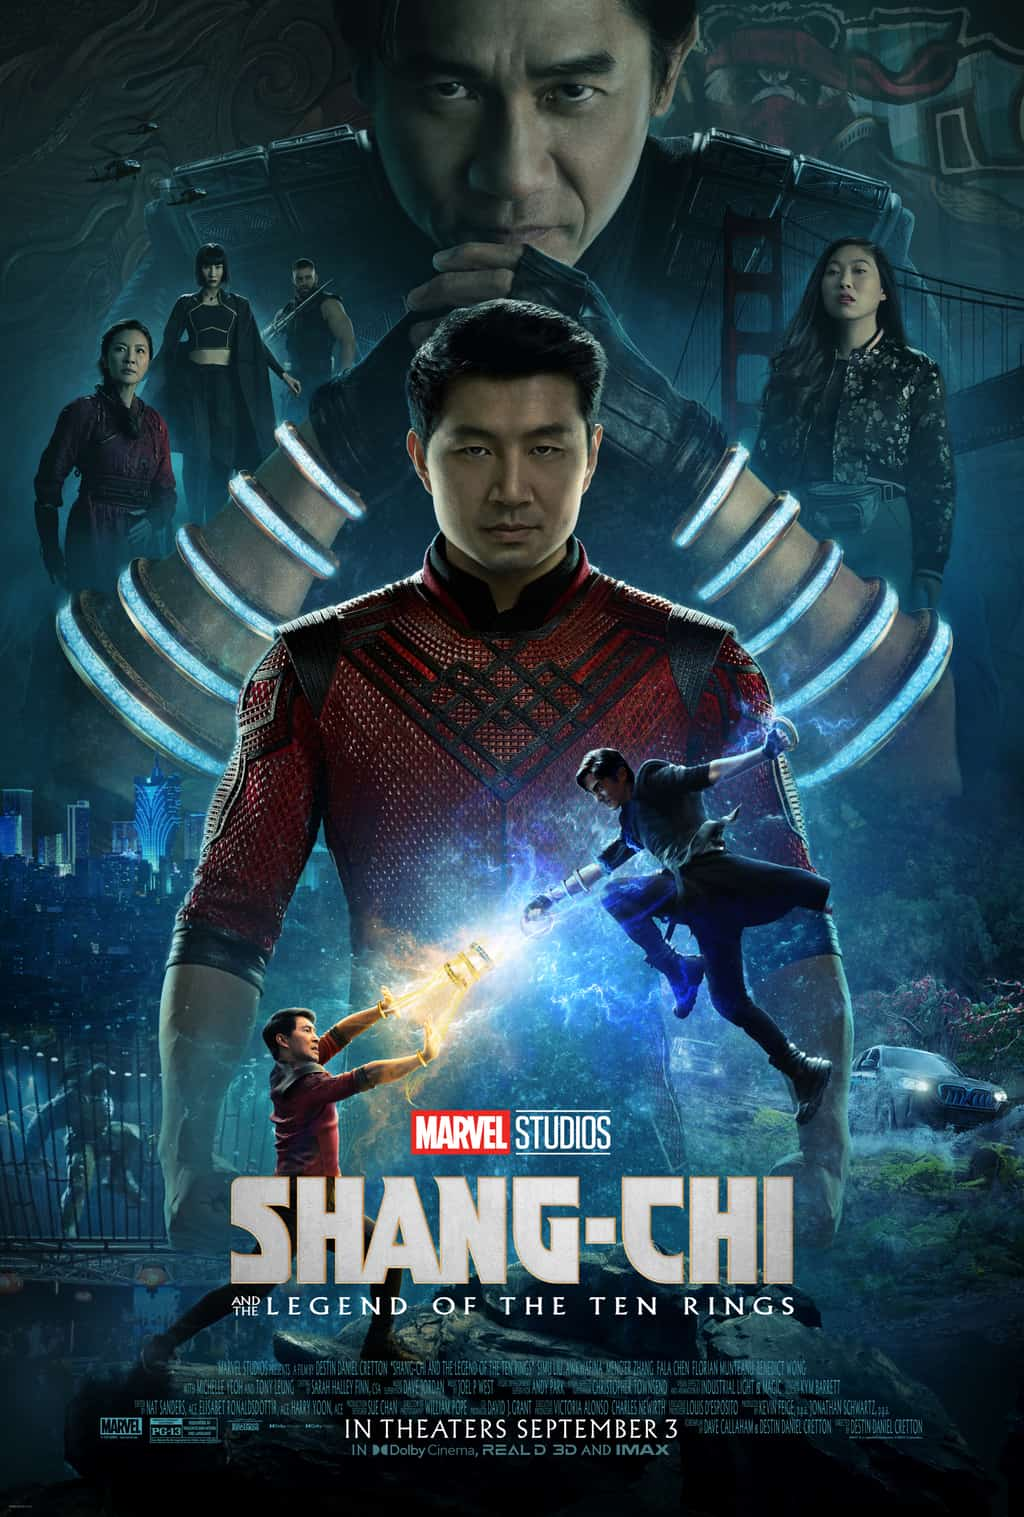 SHANG-CHI AND THE LEGEND OF THE TEN RINGS safe for kids? parent movie review